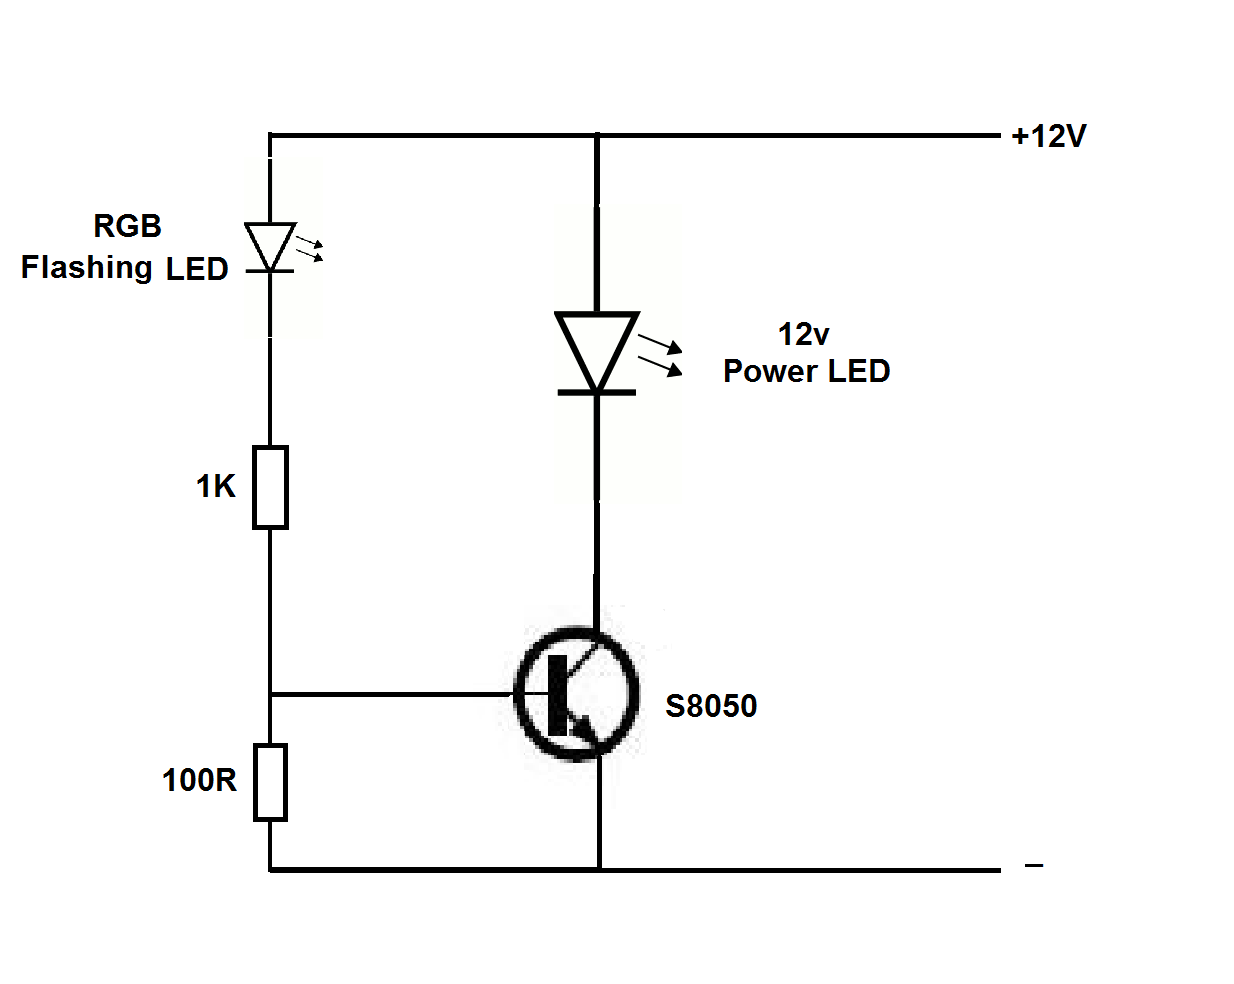 Transistor Led Flasher Circuit Power Using Flashing Simple Projects 1234x984